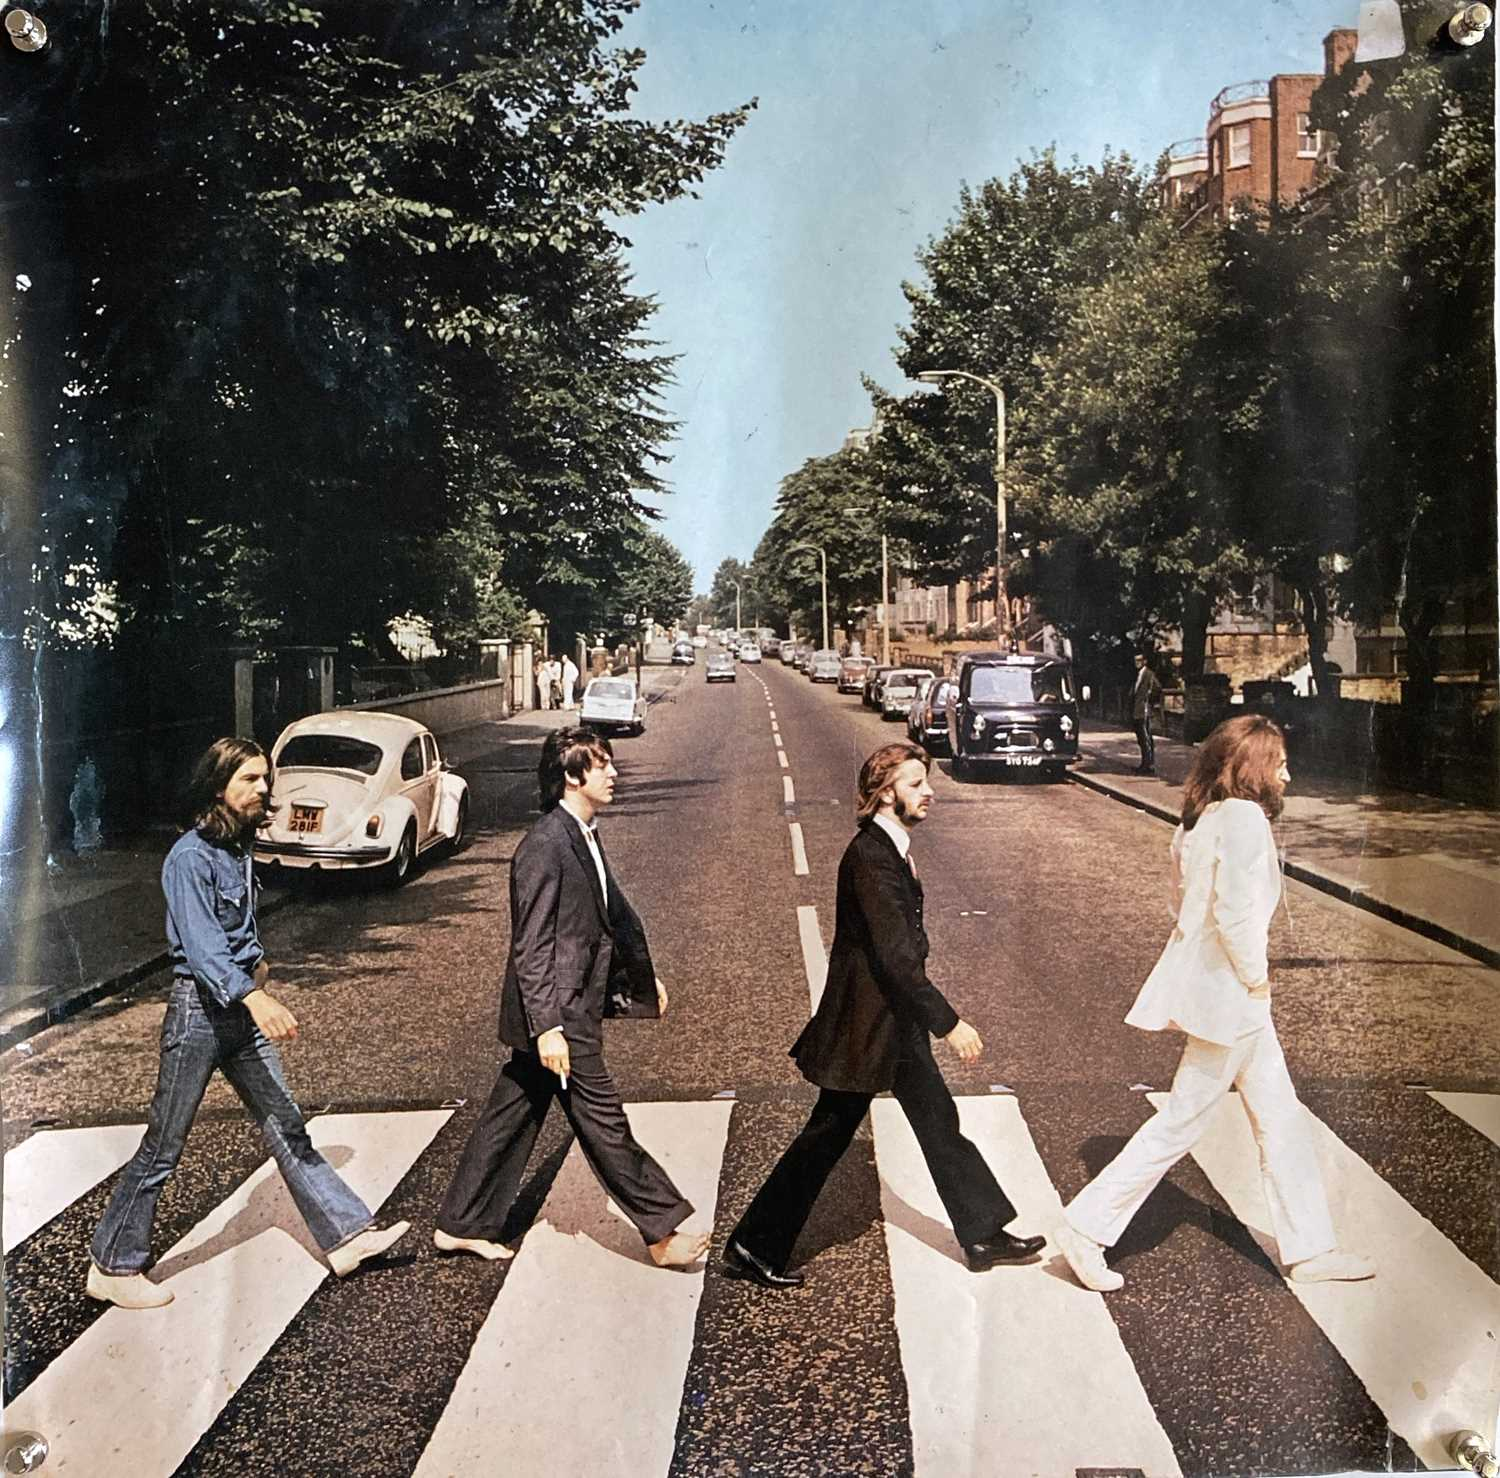 BEATLES / ROLLING STONES POSTERS. - Image 4 of 8